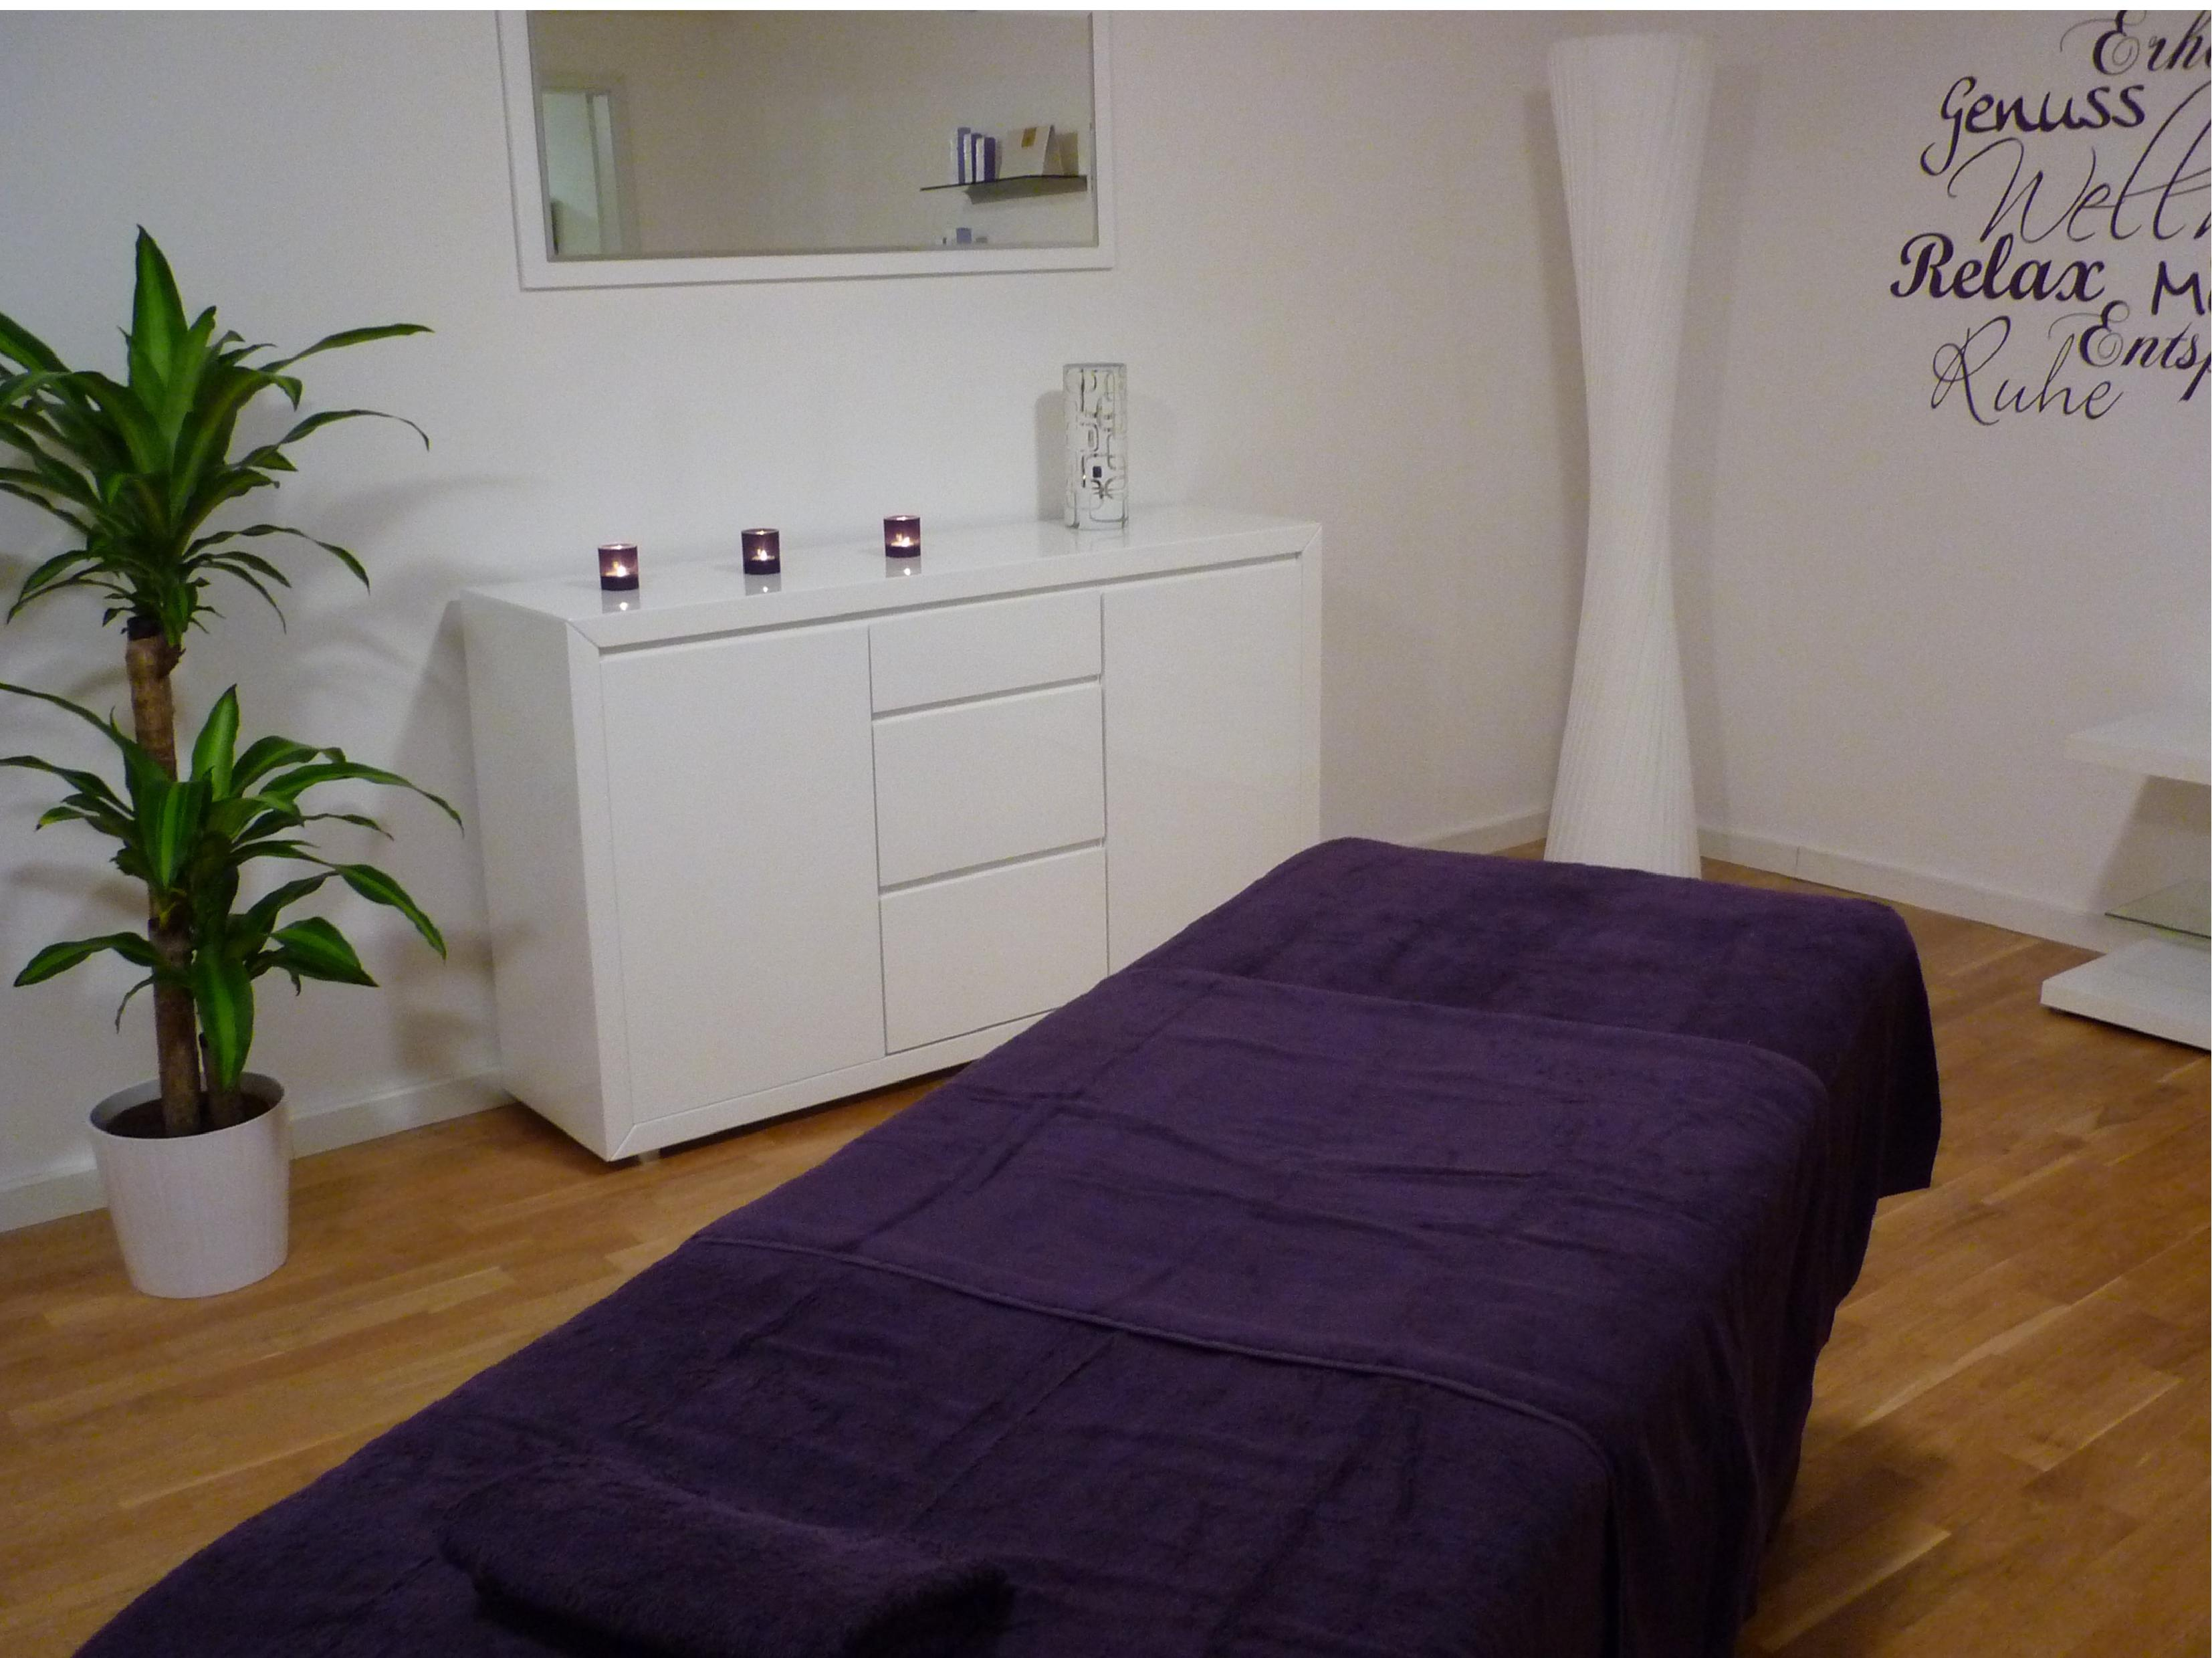 Youthful - The Beauty amp Wellbeing Institute